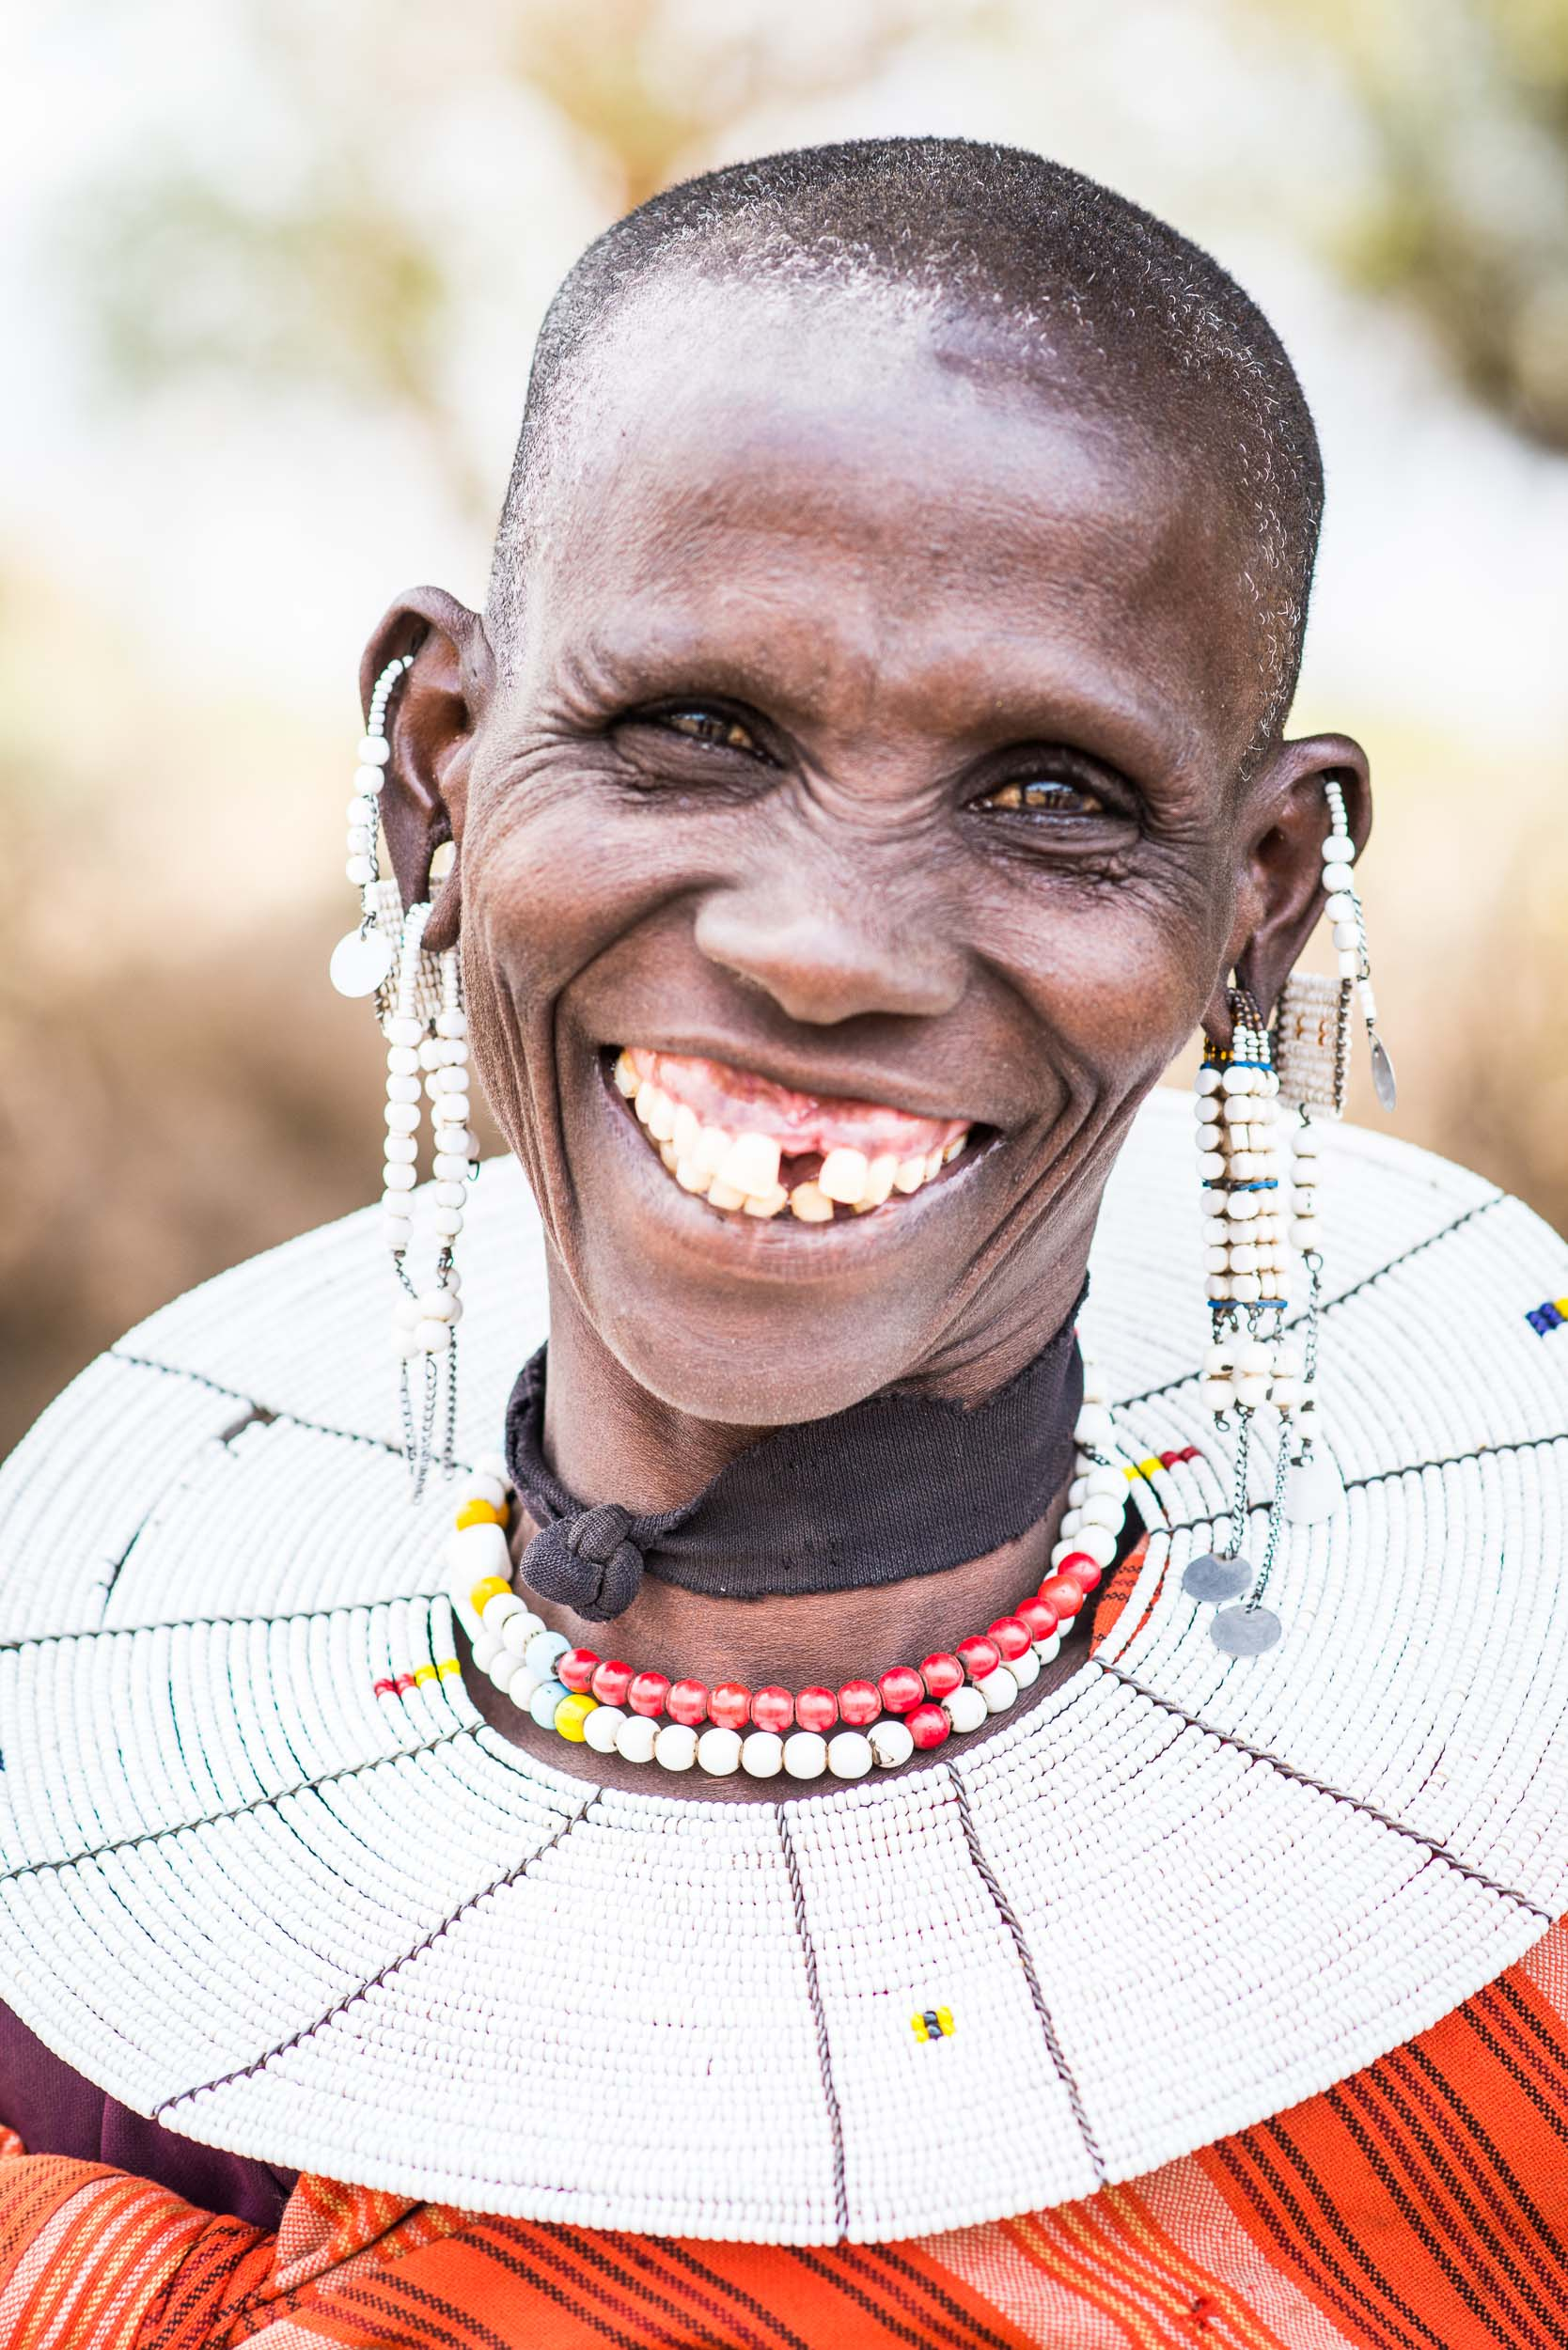 Tanzania smiling massai - Travel - Photo credit Nicola Bailey.jpg